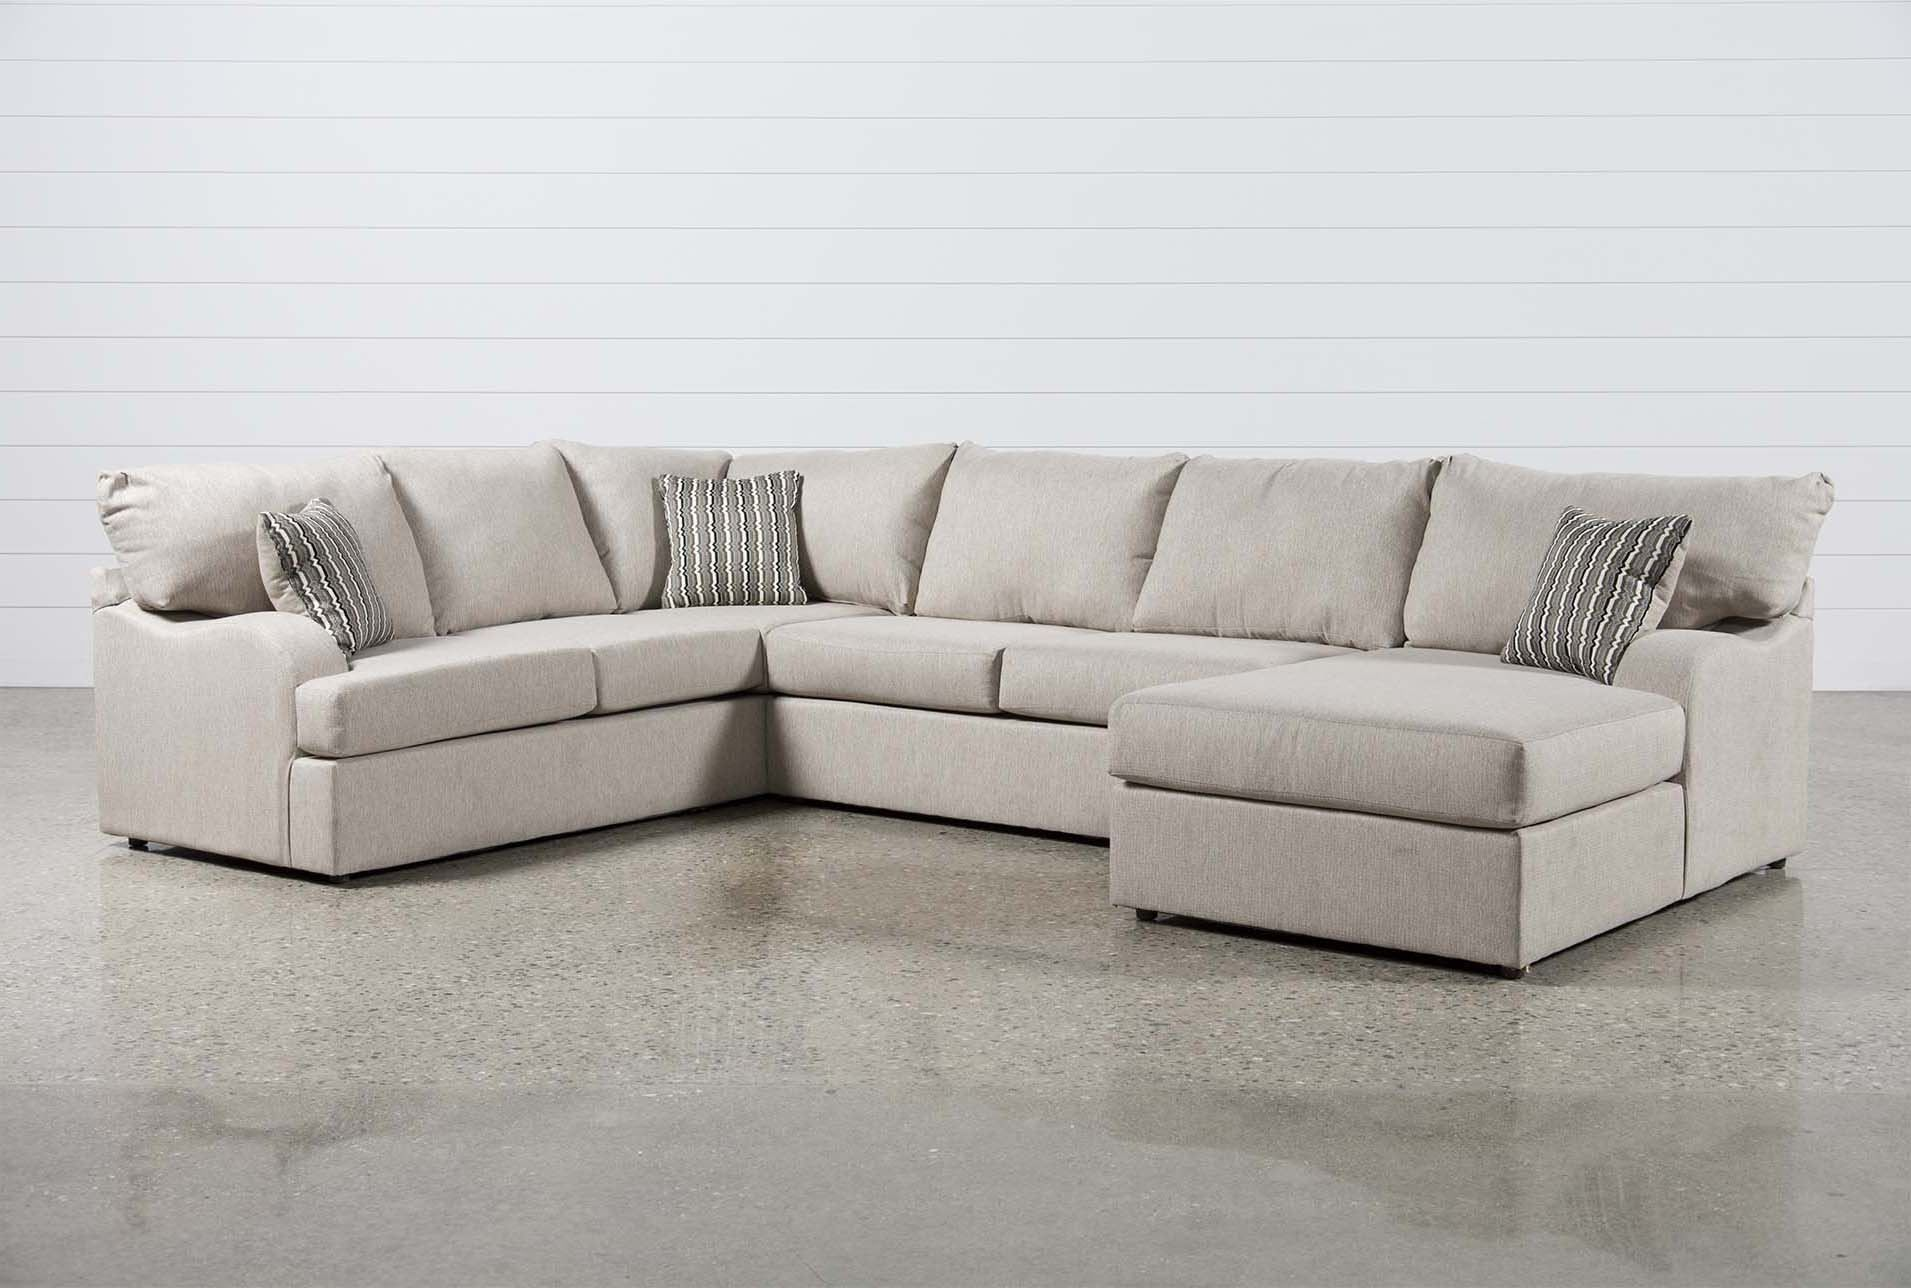 Best Meyer 3 Piece Sectional With Right Arm Facing Chaise 3 640 x 480